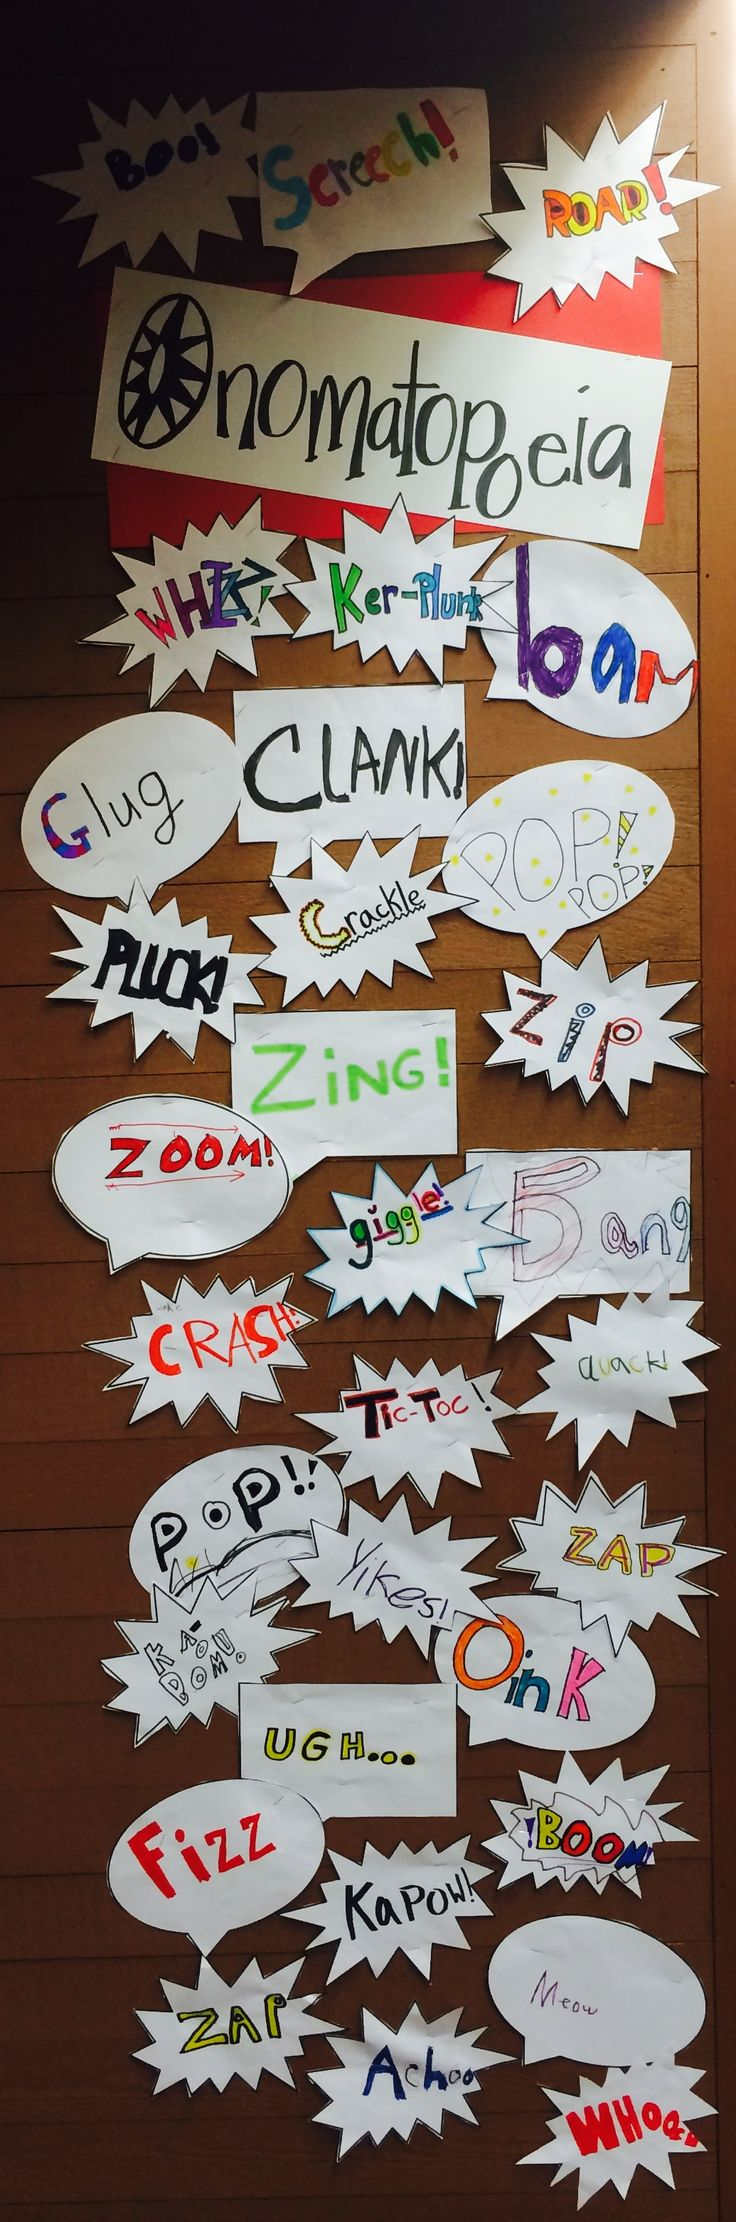 Teaching Onomatopoeia door decor!